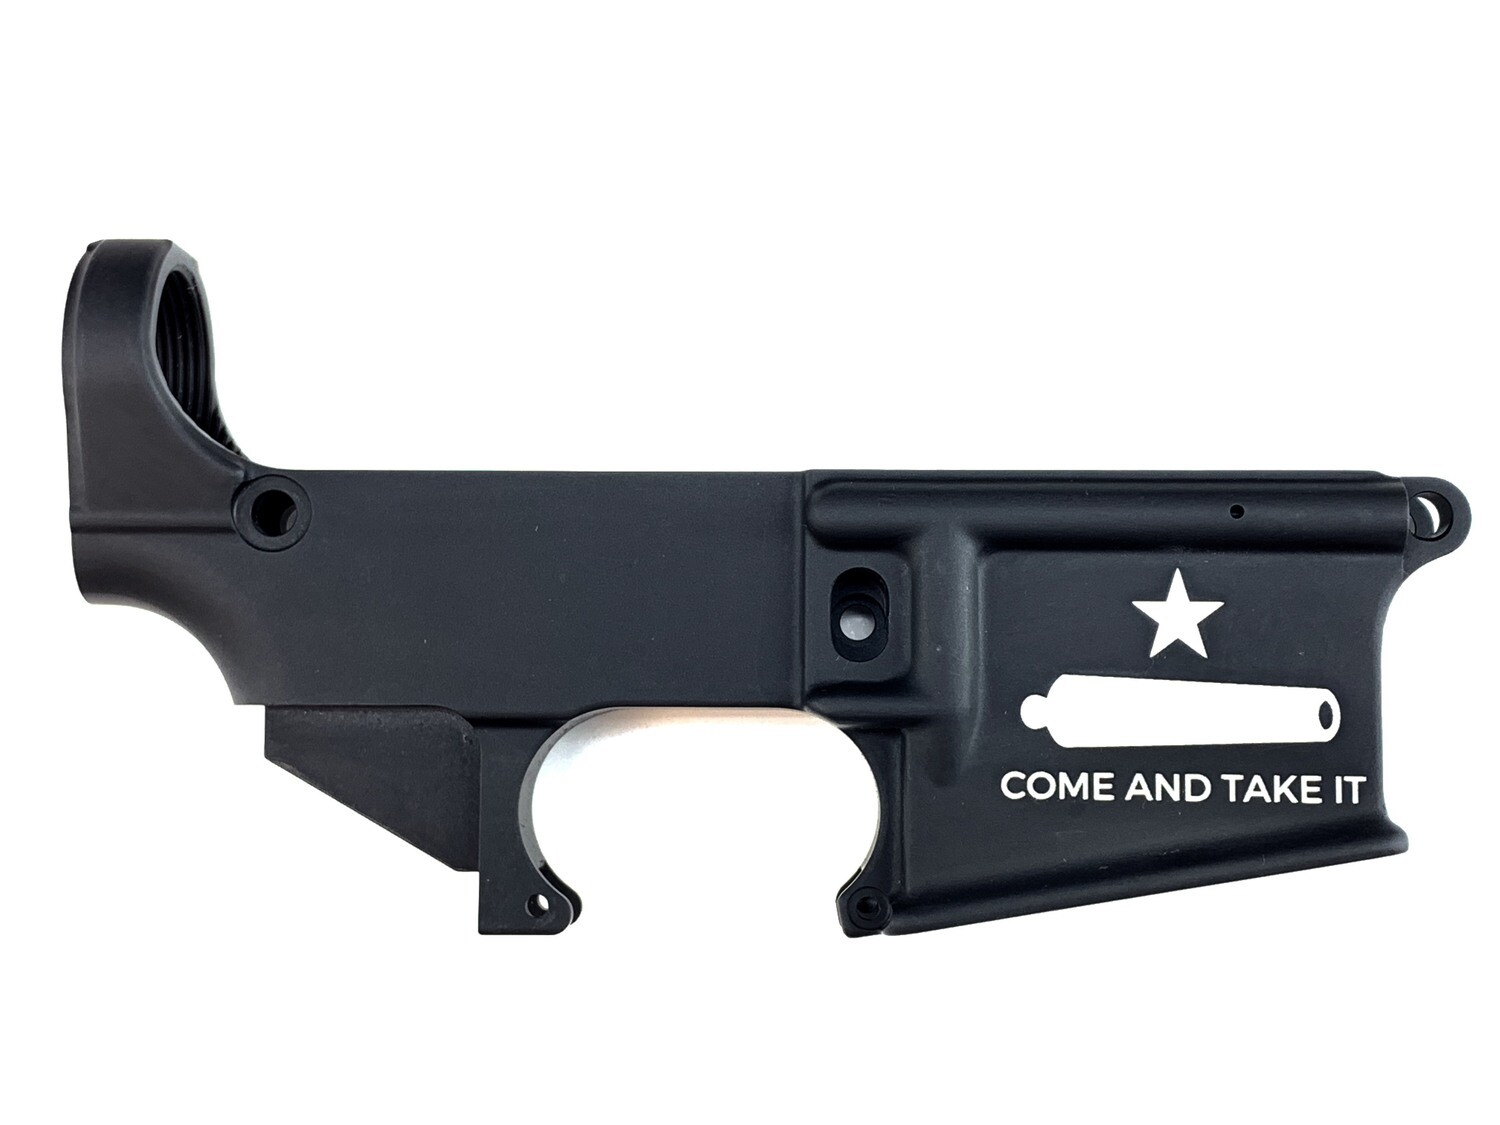 """AR-15 80% Gonzales Flag """"Come And Take It"""" Lower Receiver - Black Anodized Forged 5.56/.223"""